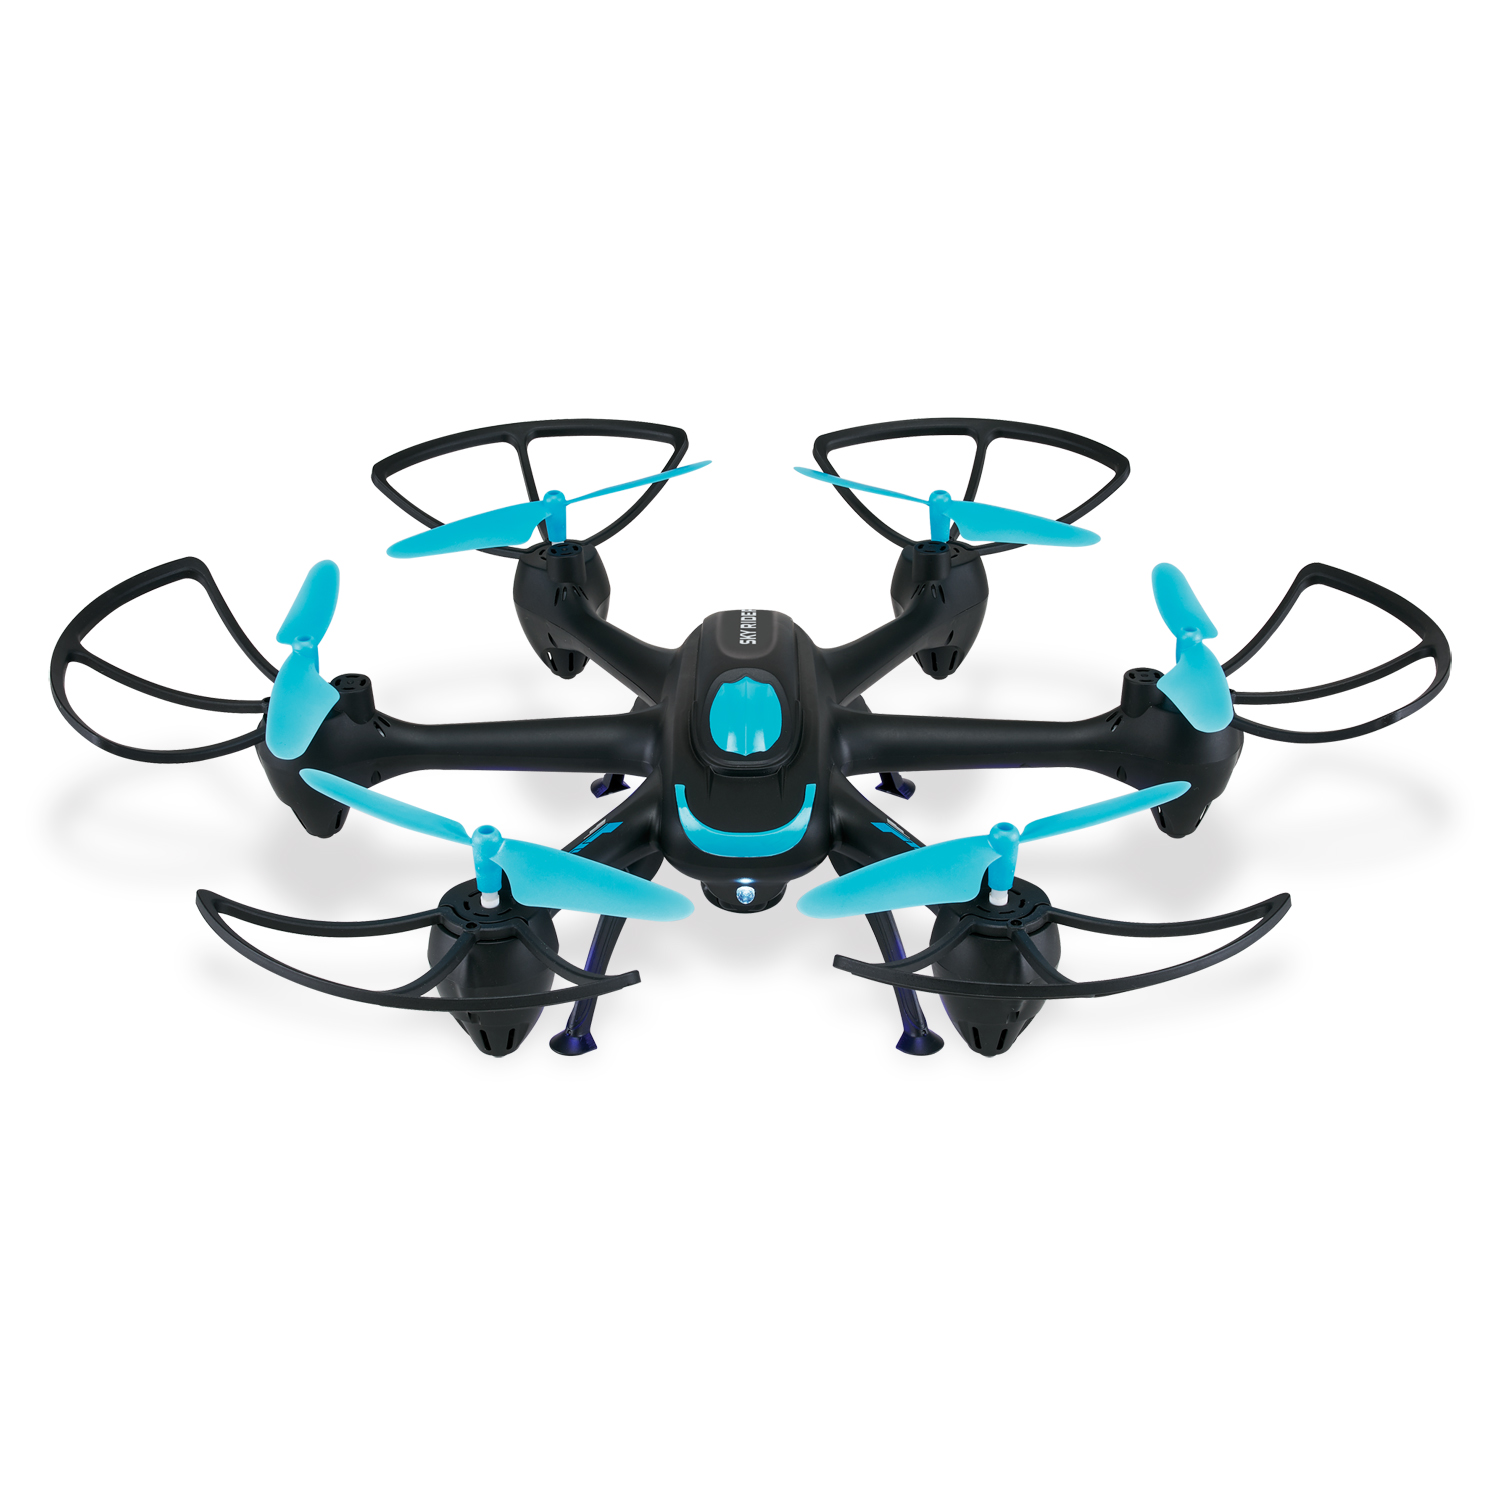 Sky Rider Night Hawk Hexacopter Drone With Wi Fi Camera